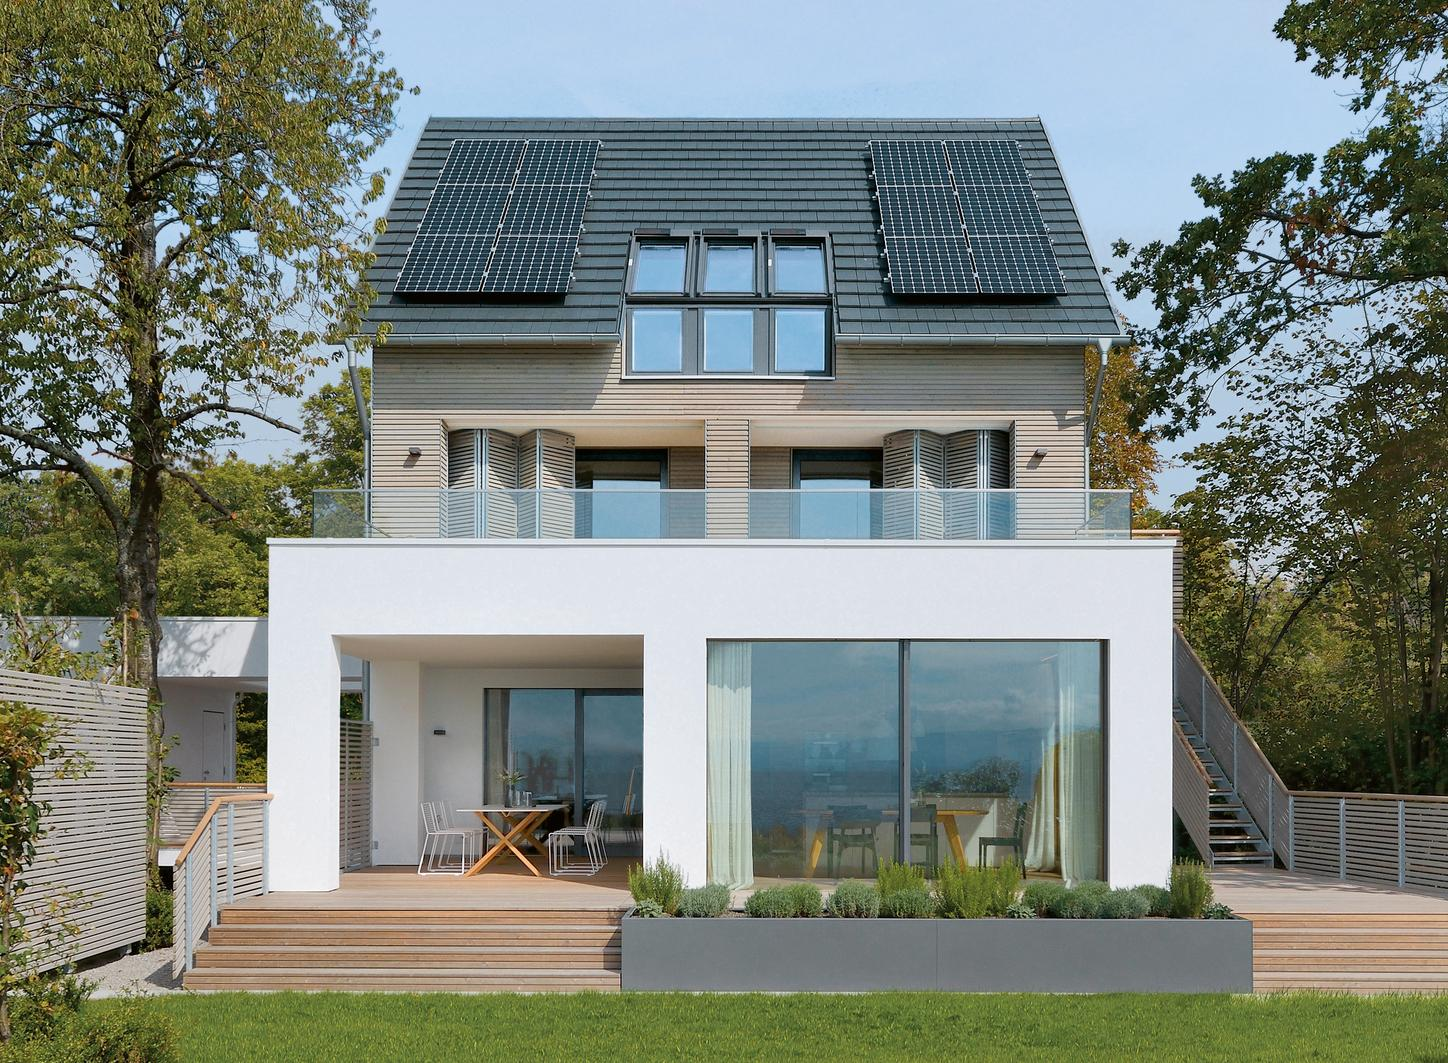 The house shows a house from outside with an electrical system.